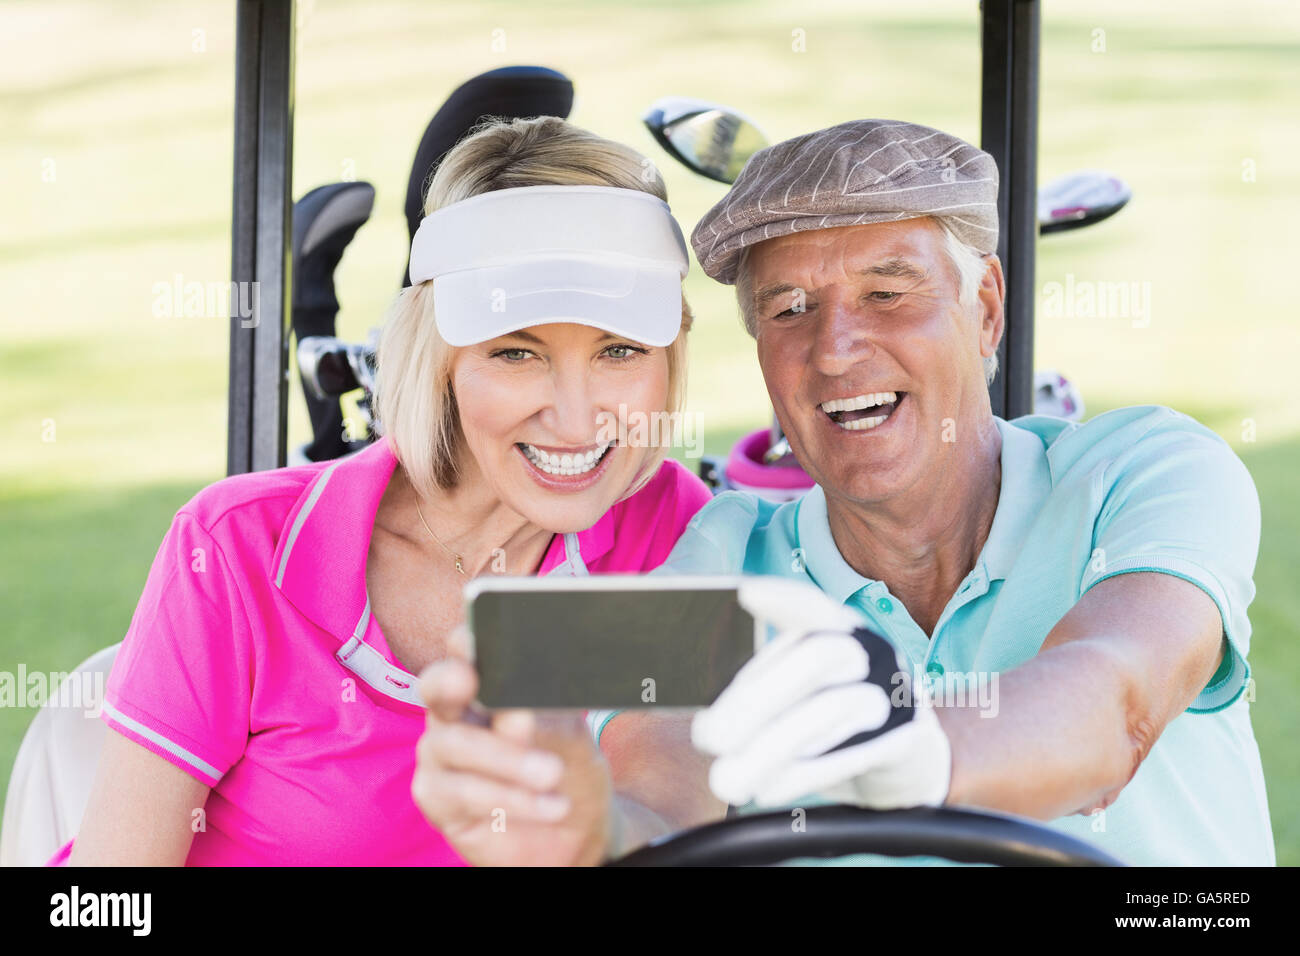 Mature couple taking selfie while sitting in golf buggy - Stock Image